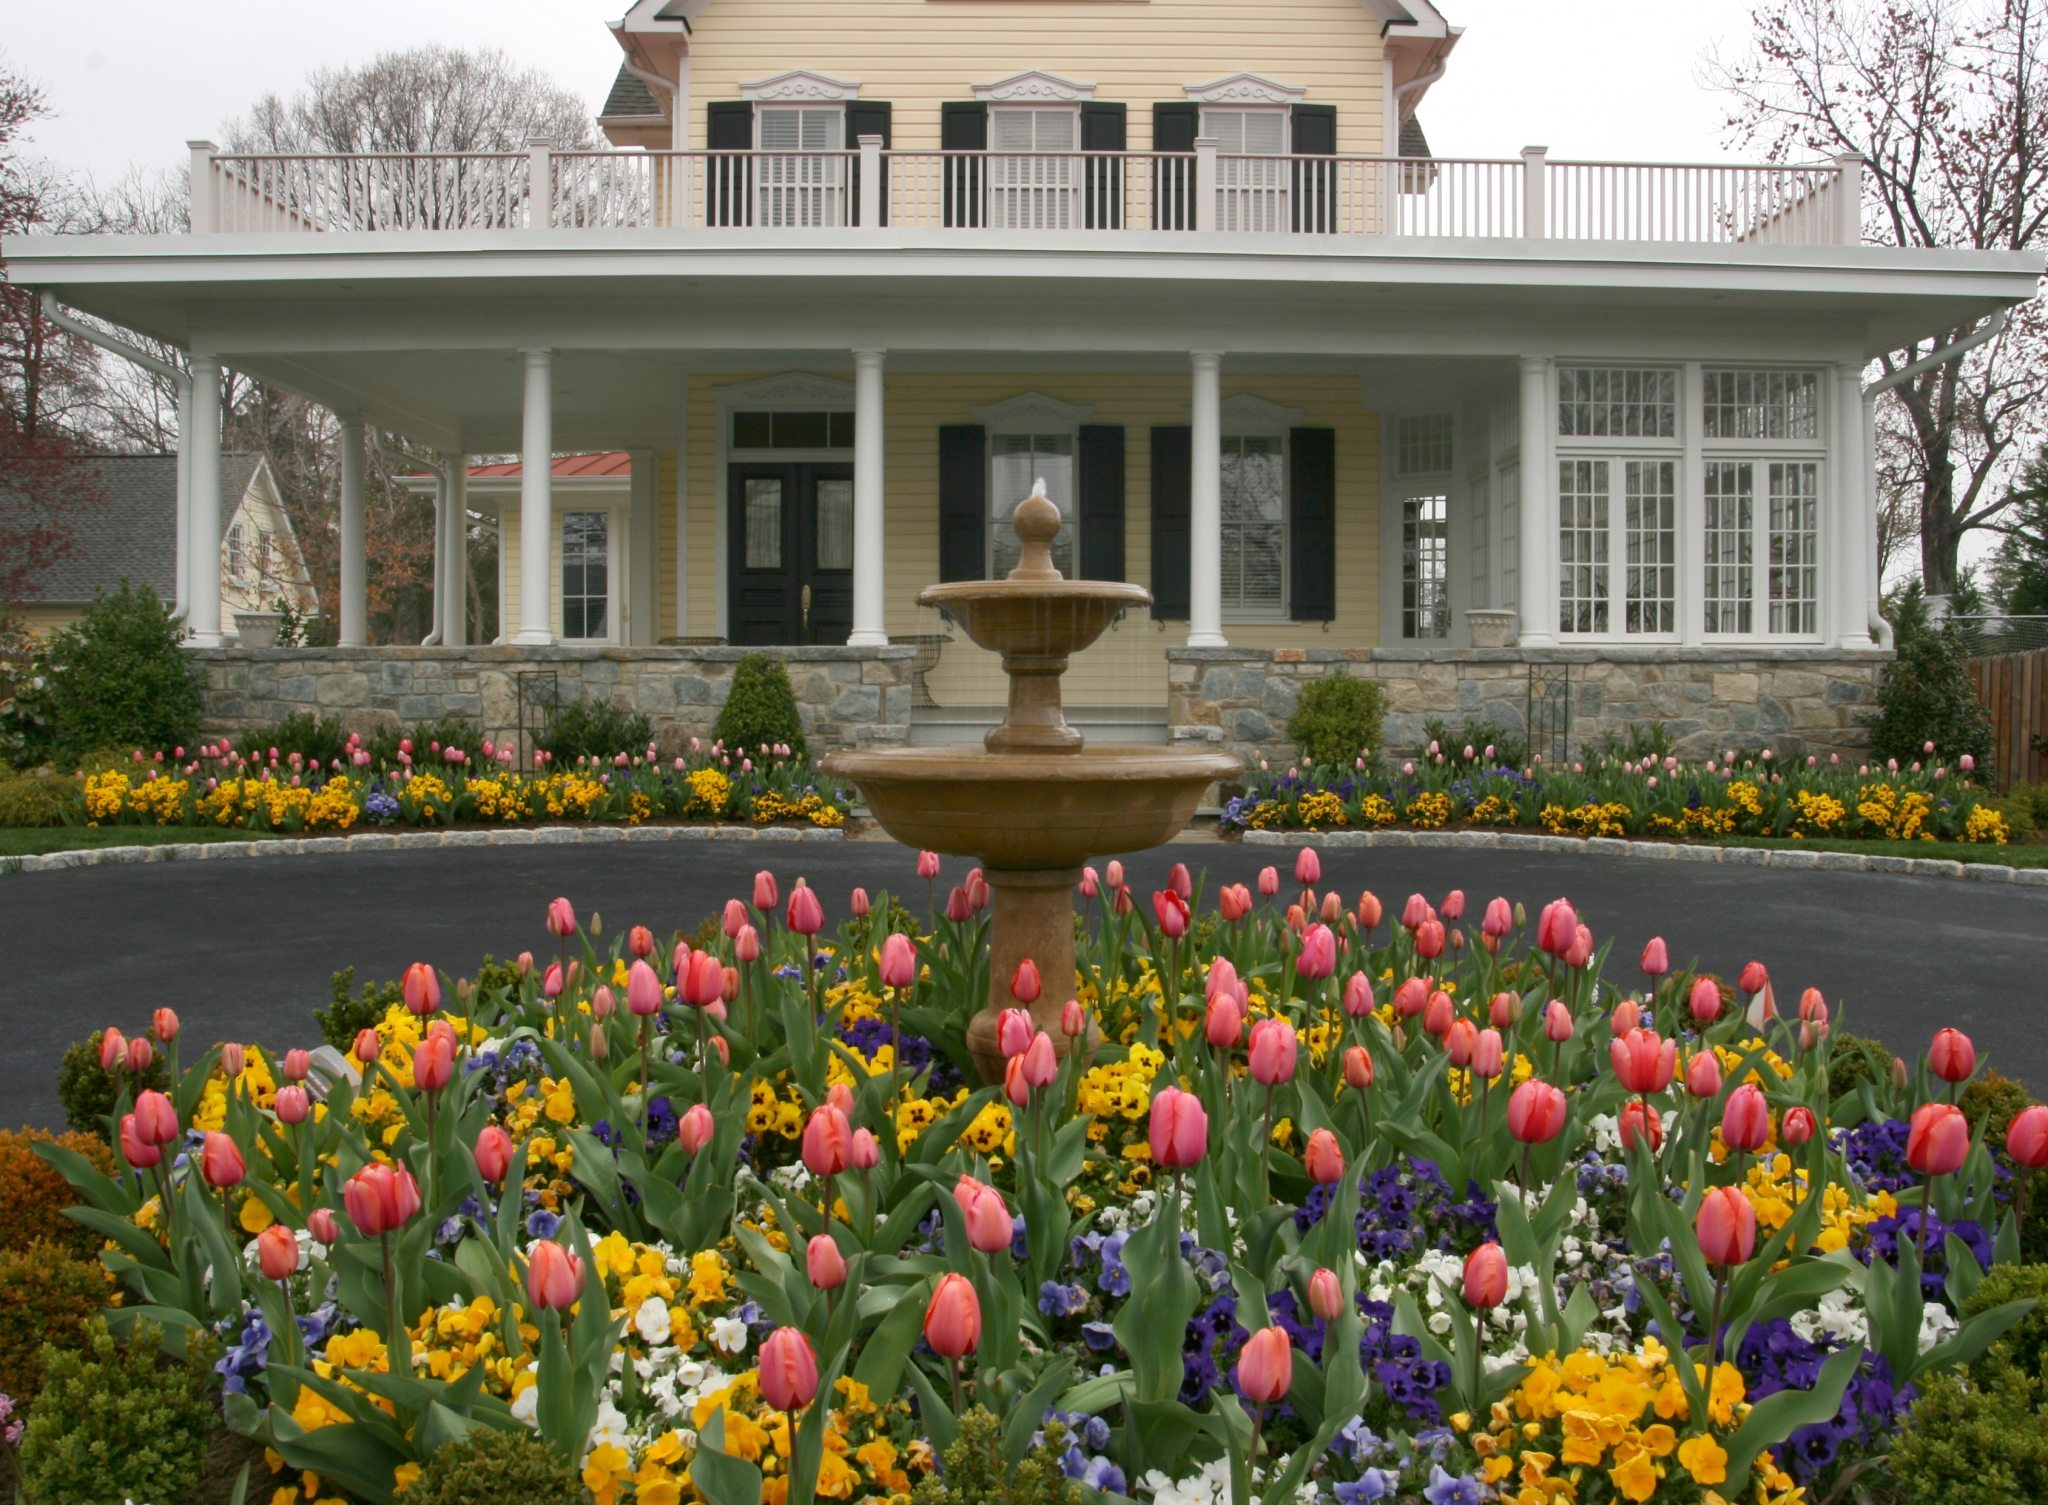 Foundatin with Tulips, Curb Appeal